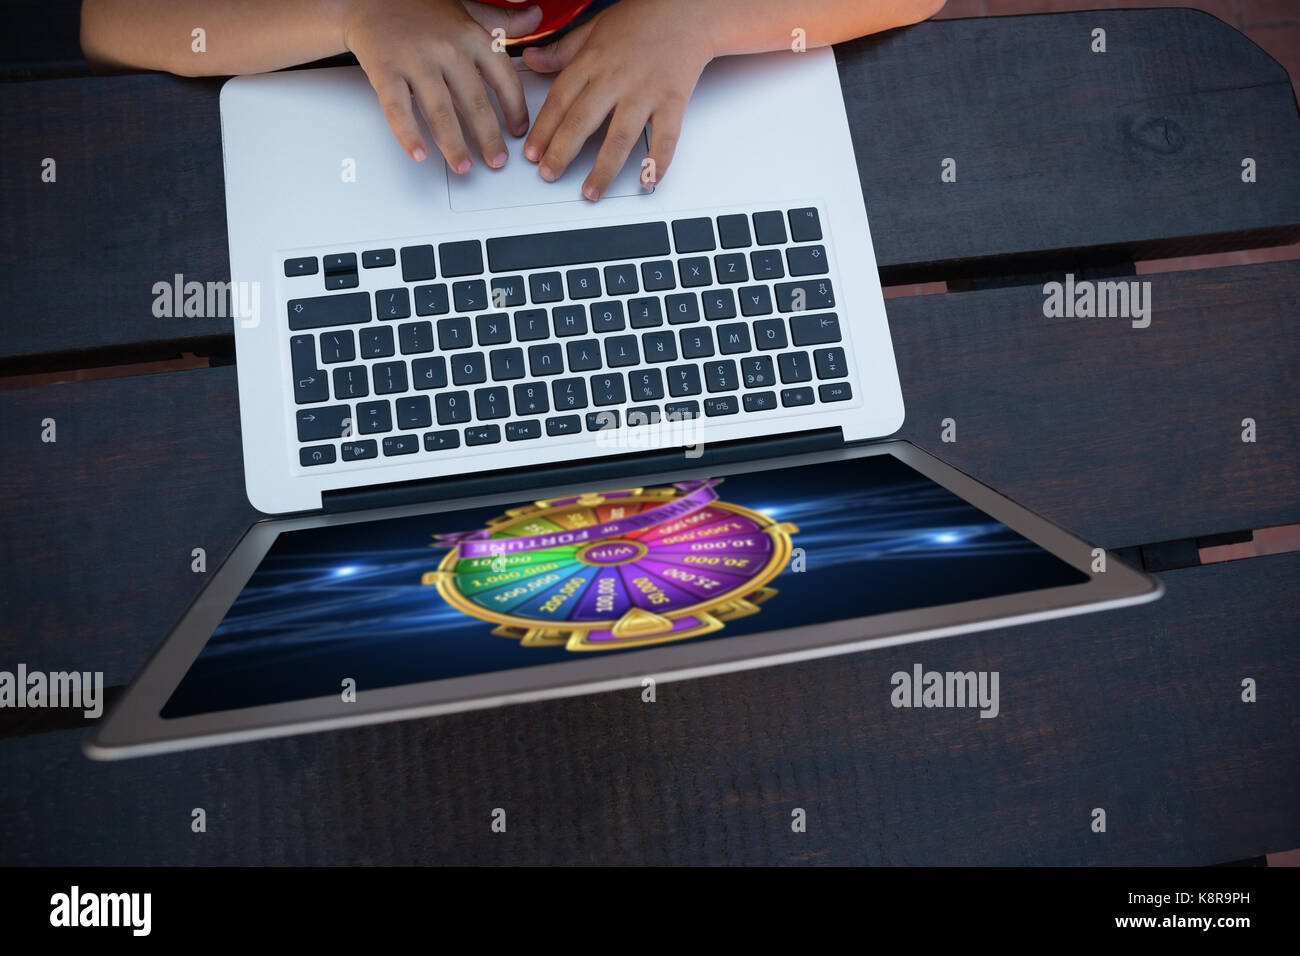 Wheel of fortune on mobile screen against overhead view of boy using digital laptop while sitting at table - Stock Image